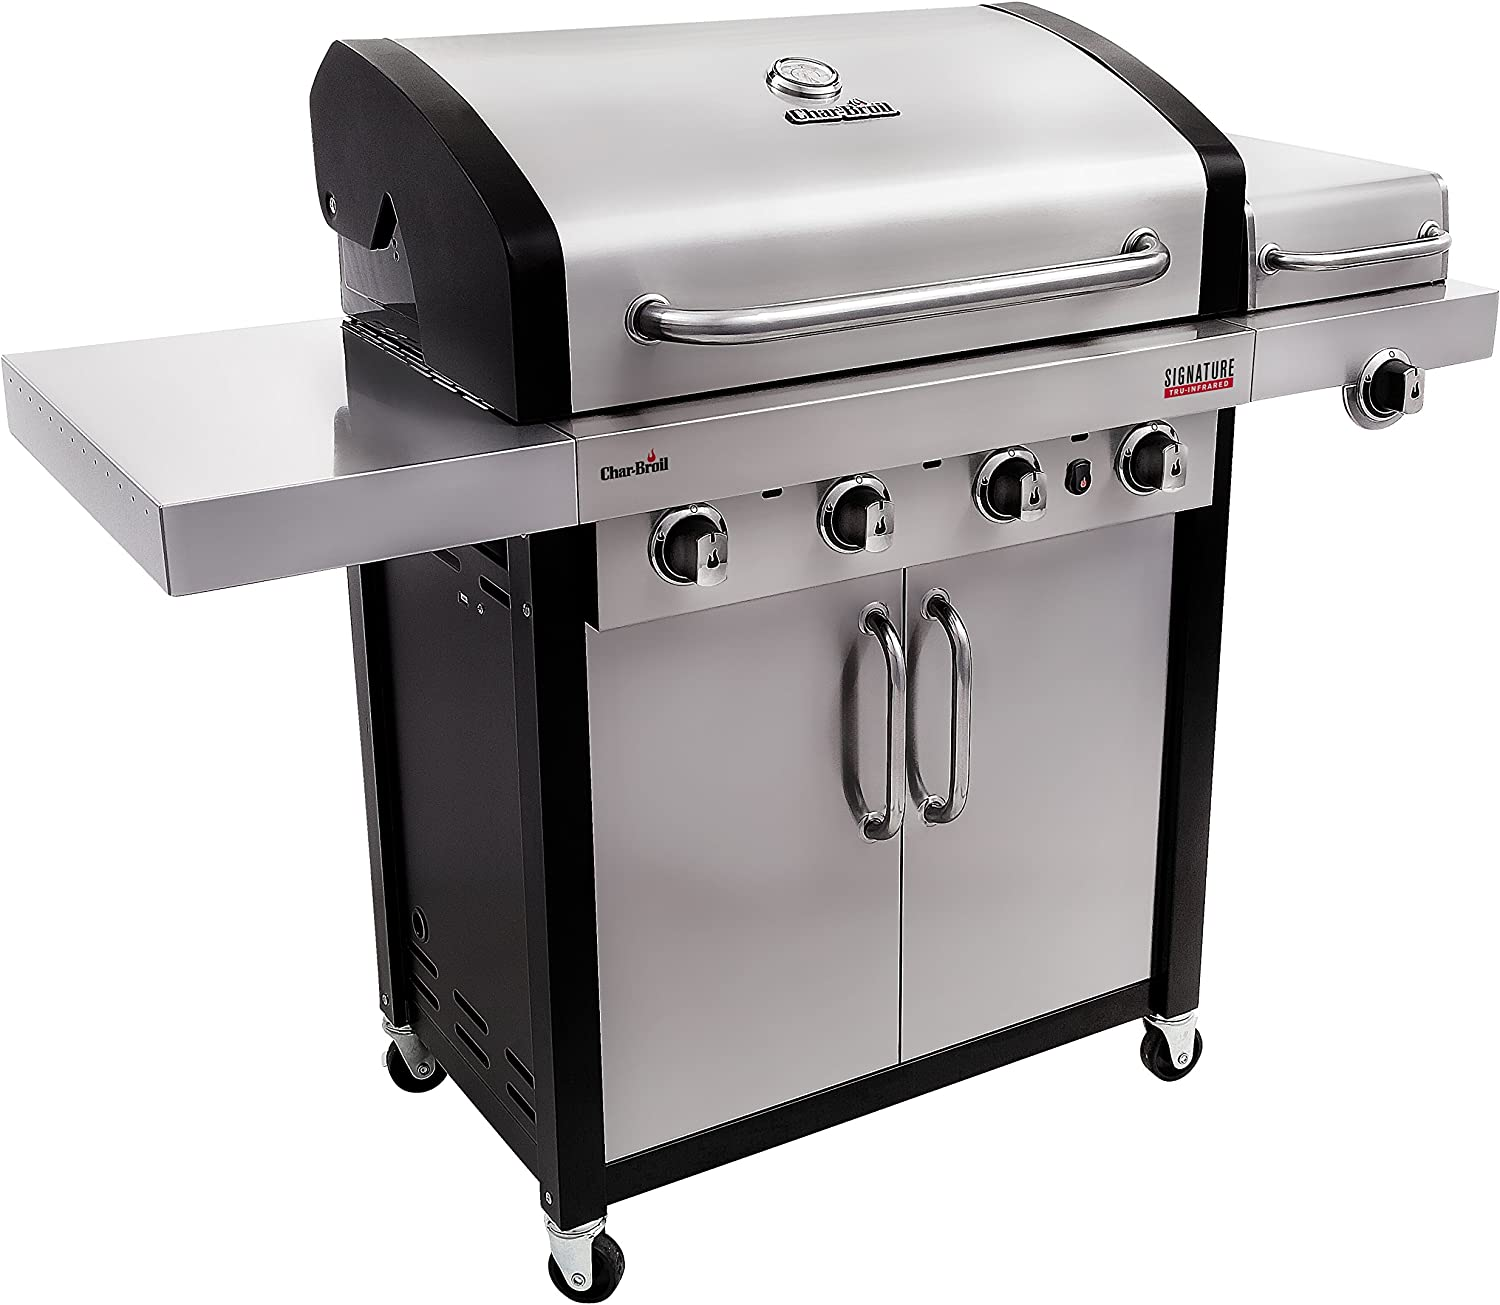 Char-Broil Signature TRU-Infrared We OFFer at cheap prices 525 Pr Cabinet Challenge the lowest price of Japan Liquid 4-Burner